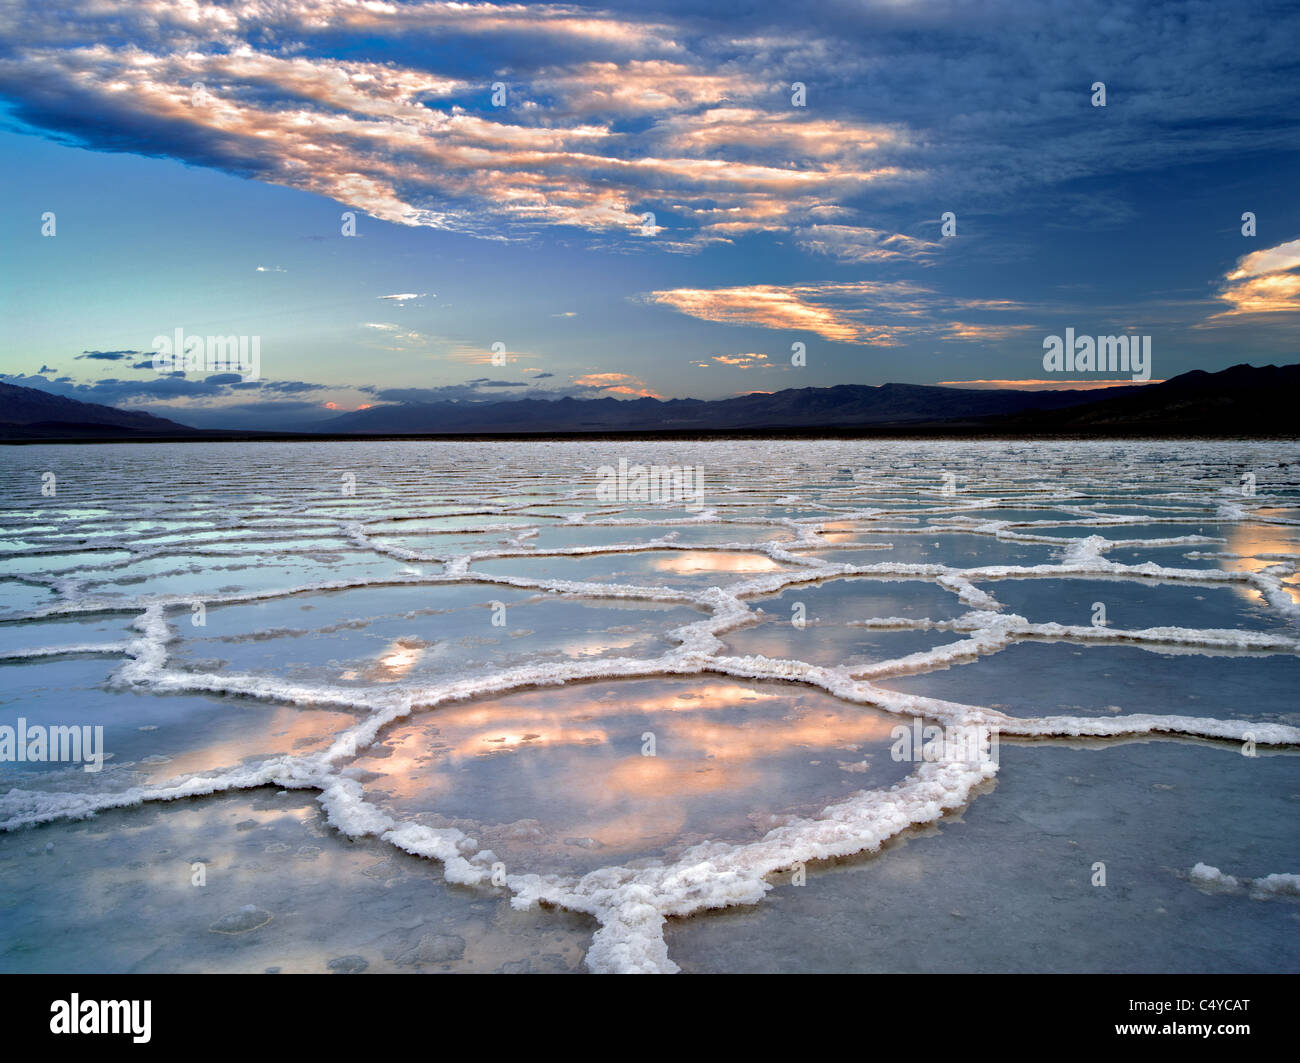 Salt poygons with water in them after rain storm. Death Valley National Park, California. - Stock Image